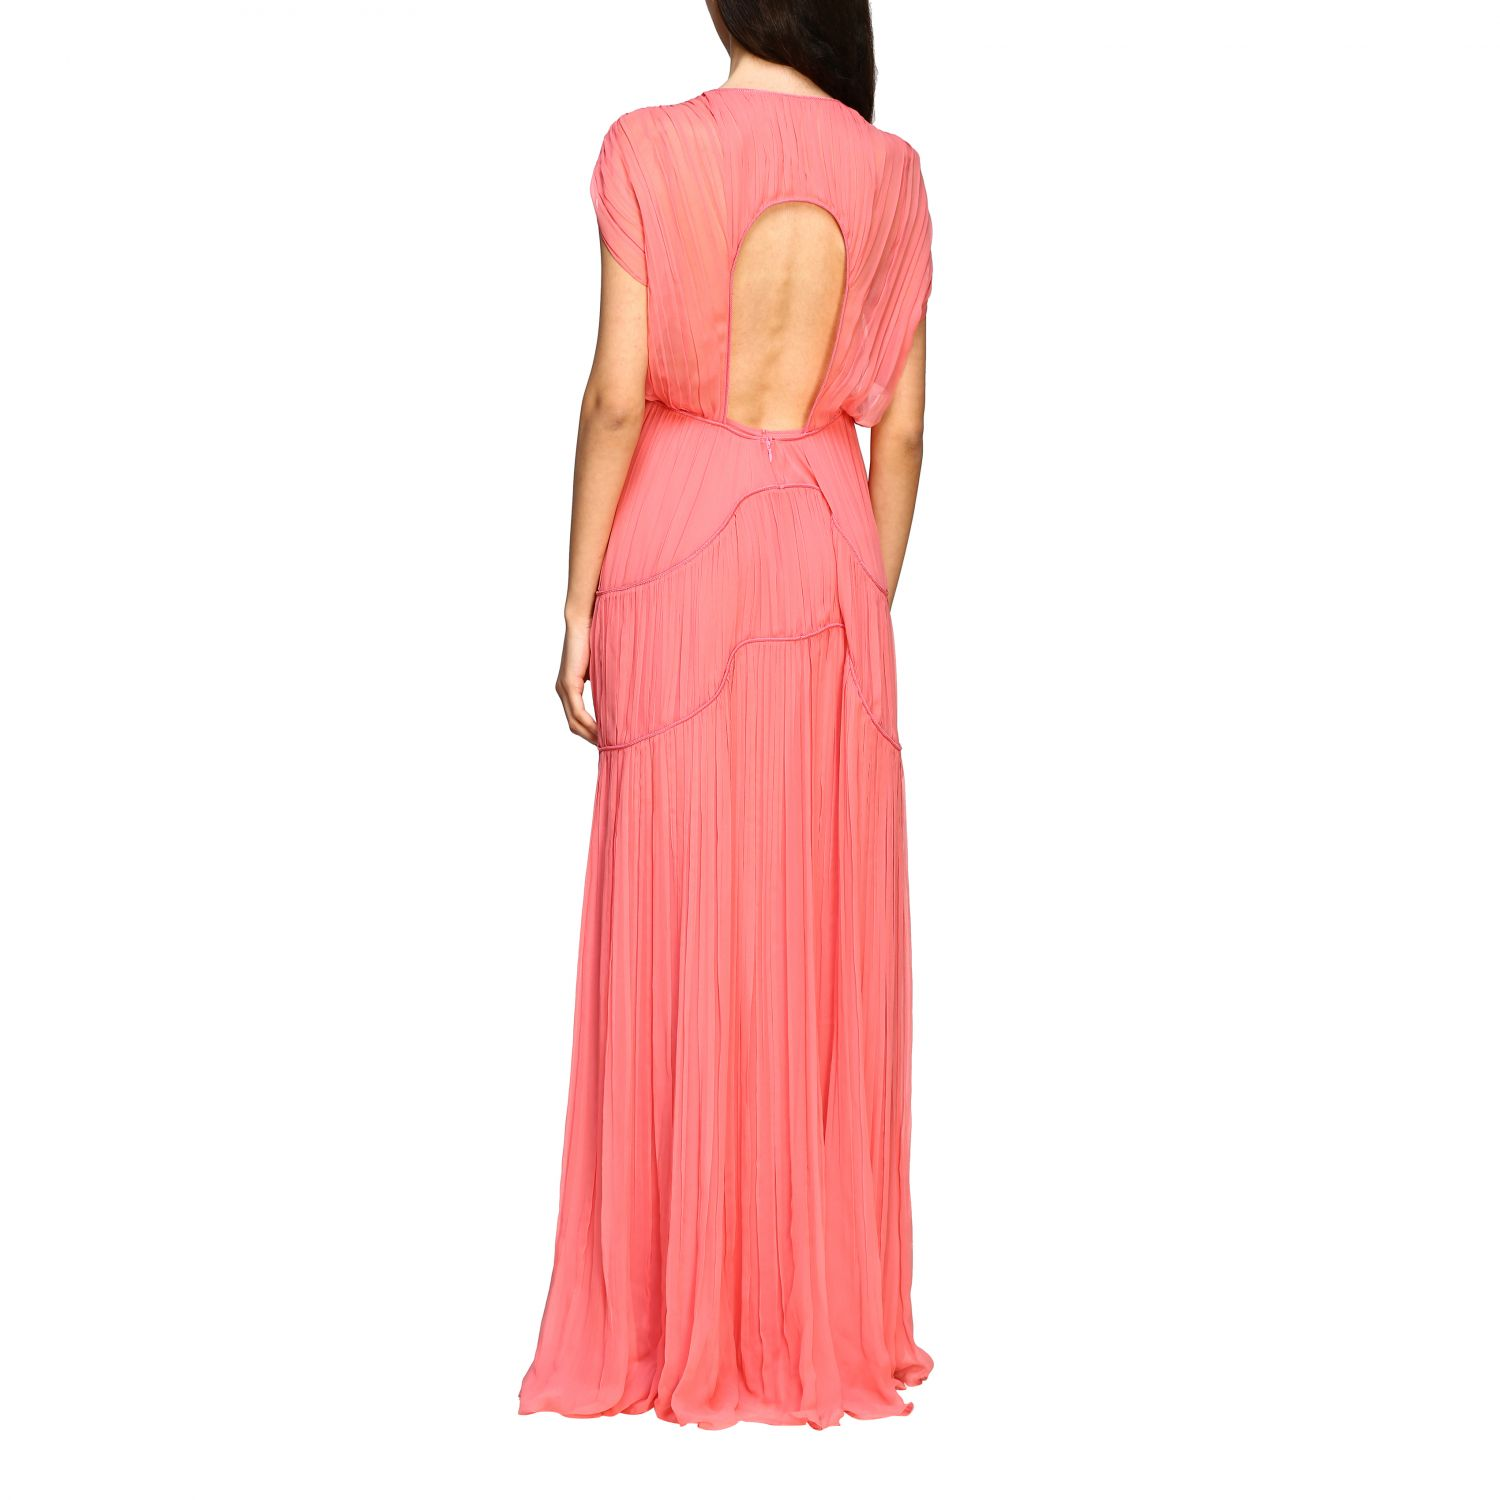 Dress Alberta Ferretti: Dress women Alberta Ferretti pink 2